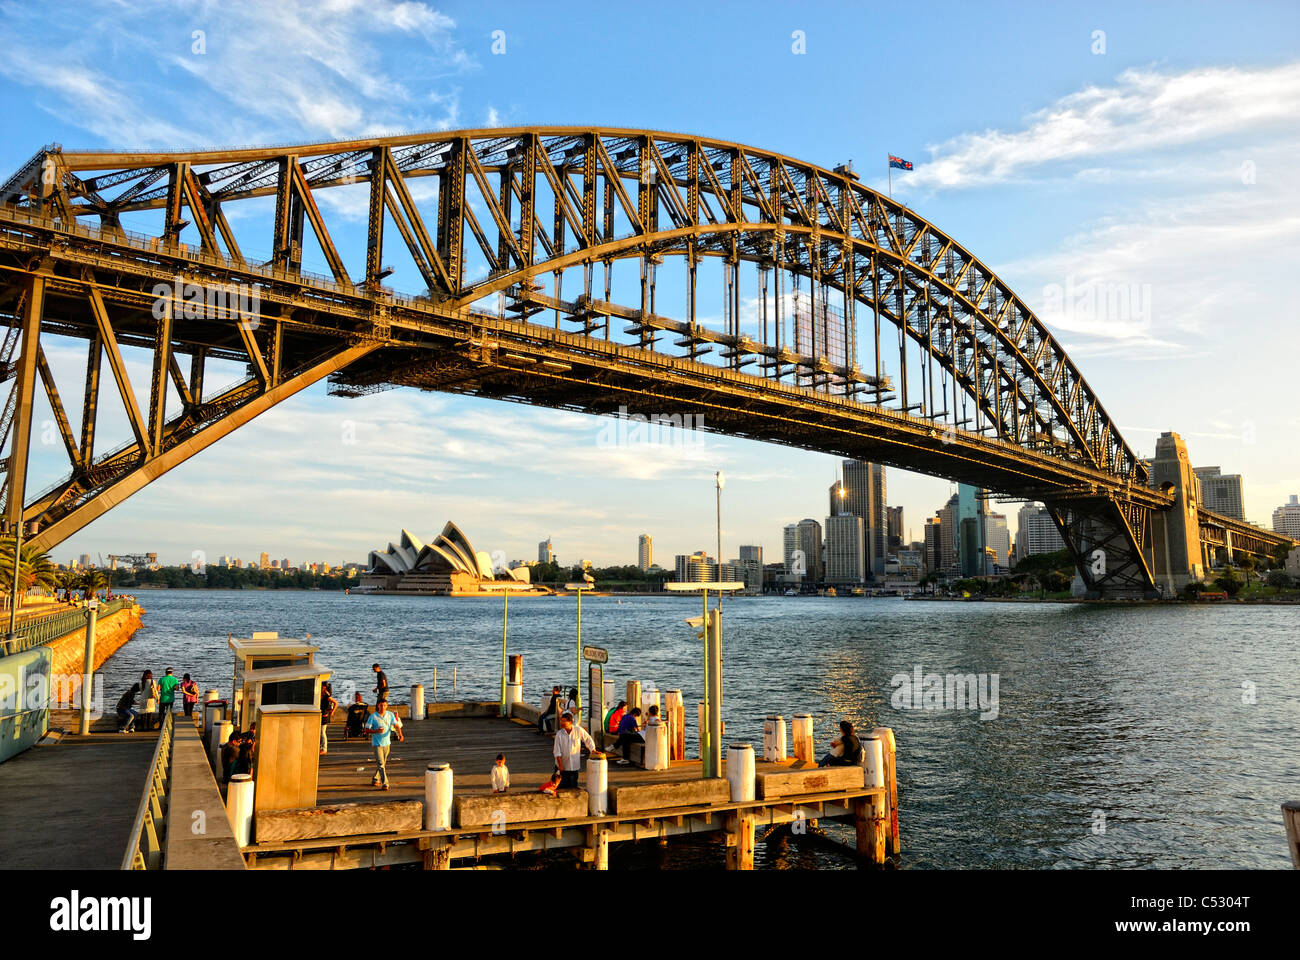 Sydney Harbour Bridge in the evening light, with the opera house in the background and Sydney Harbor below. Sydney - Stock Image